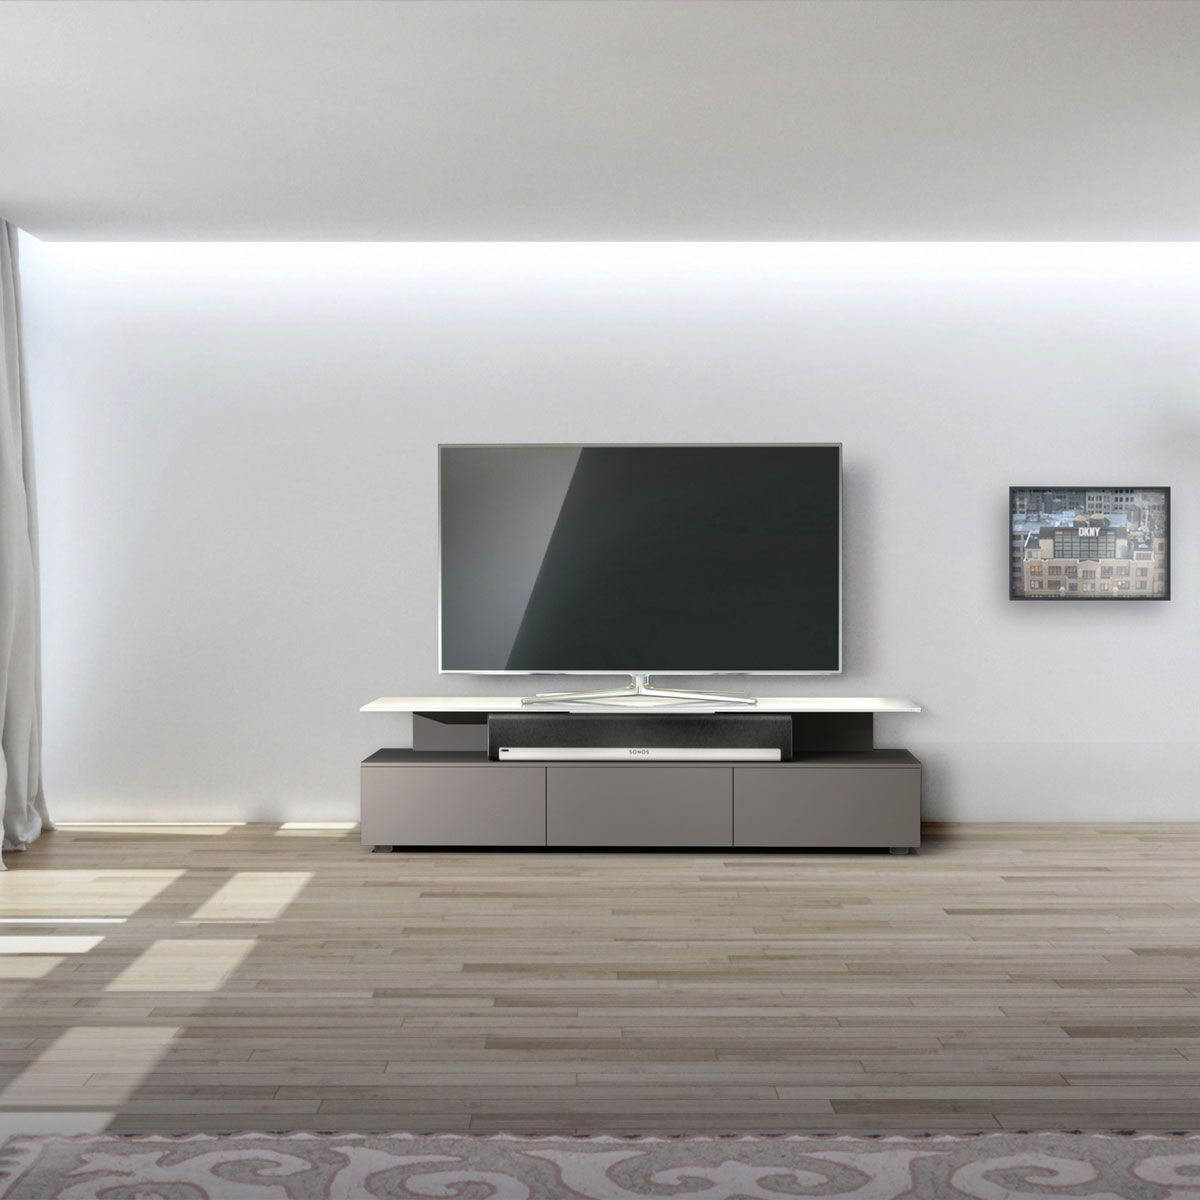 Designer Tv Möbel Genial Tv Möbel Design Deutsche In 2019